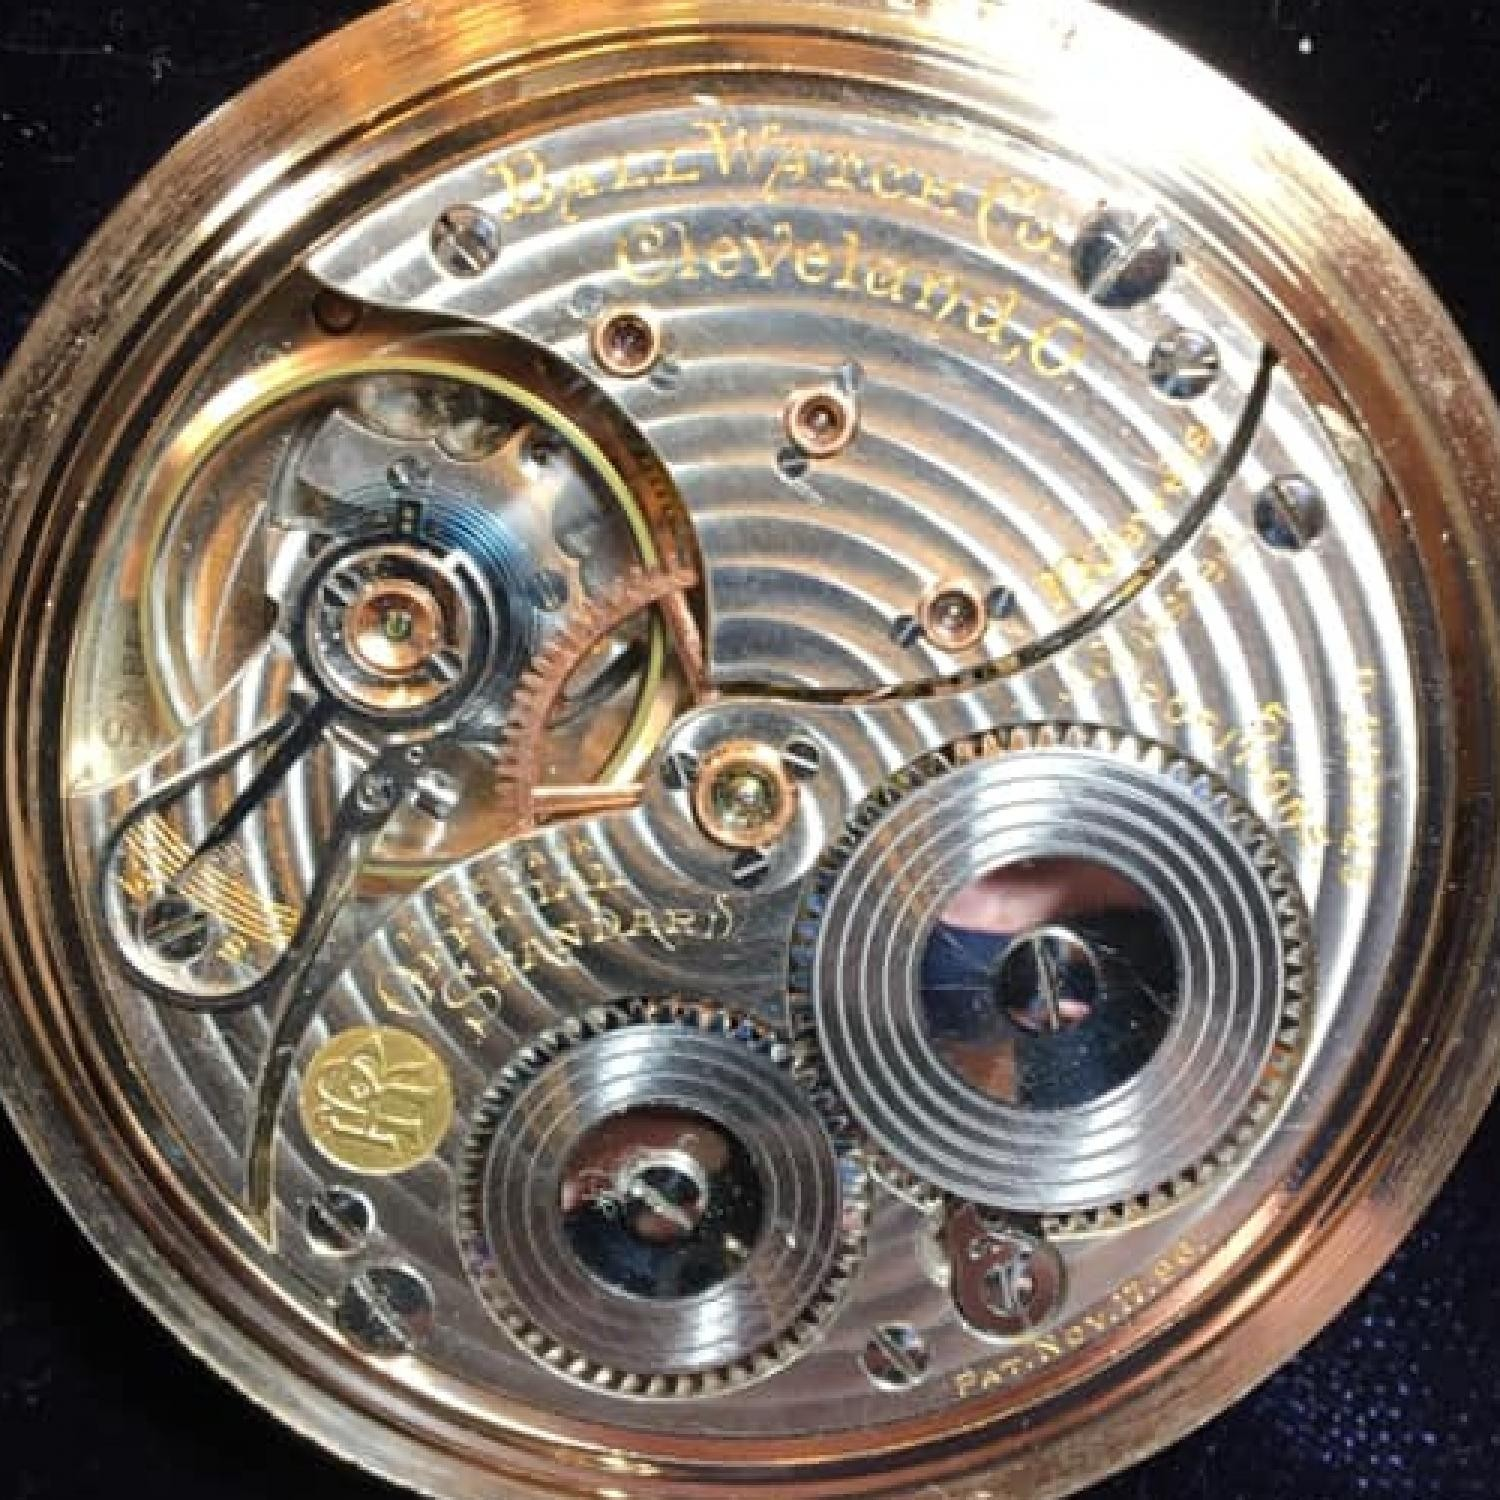 Image of Ball - Waltham Official Standard #B228325 Movement